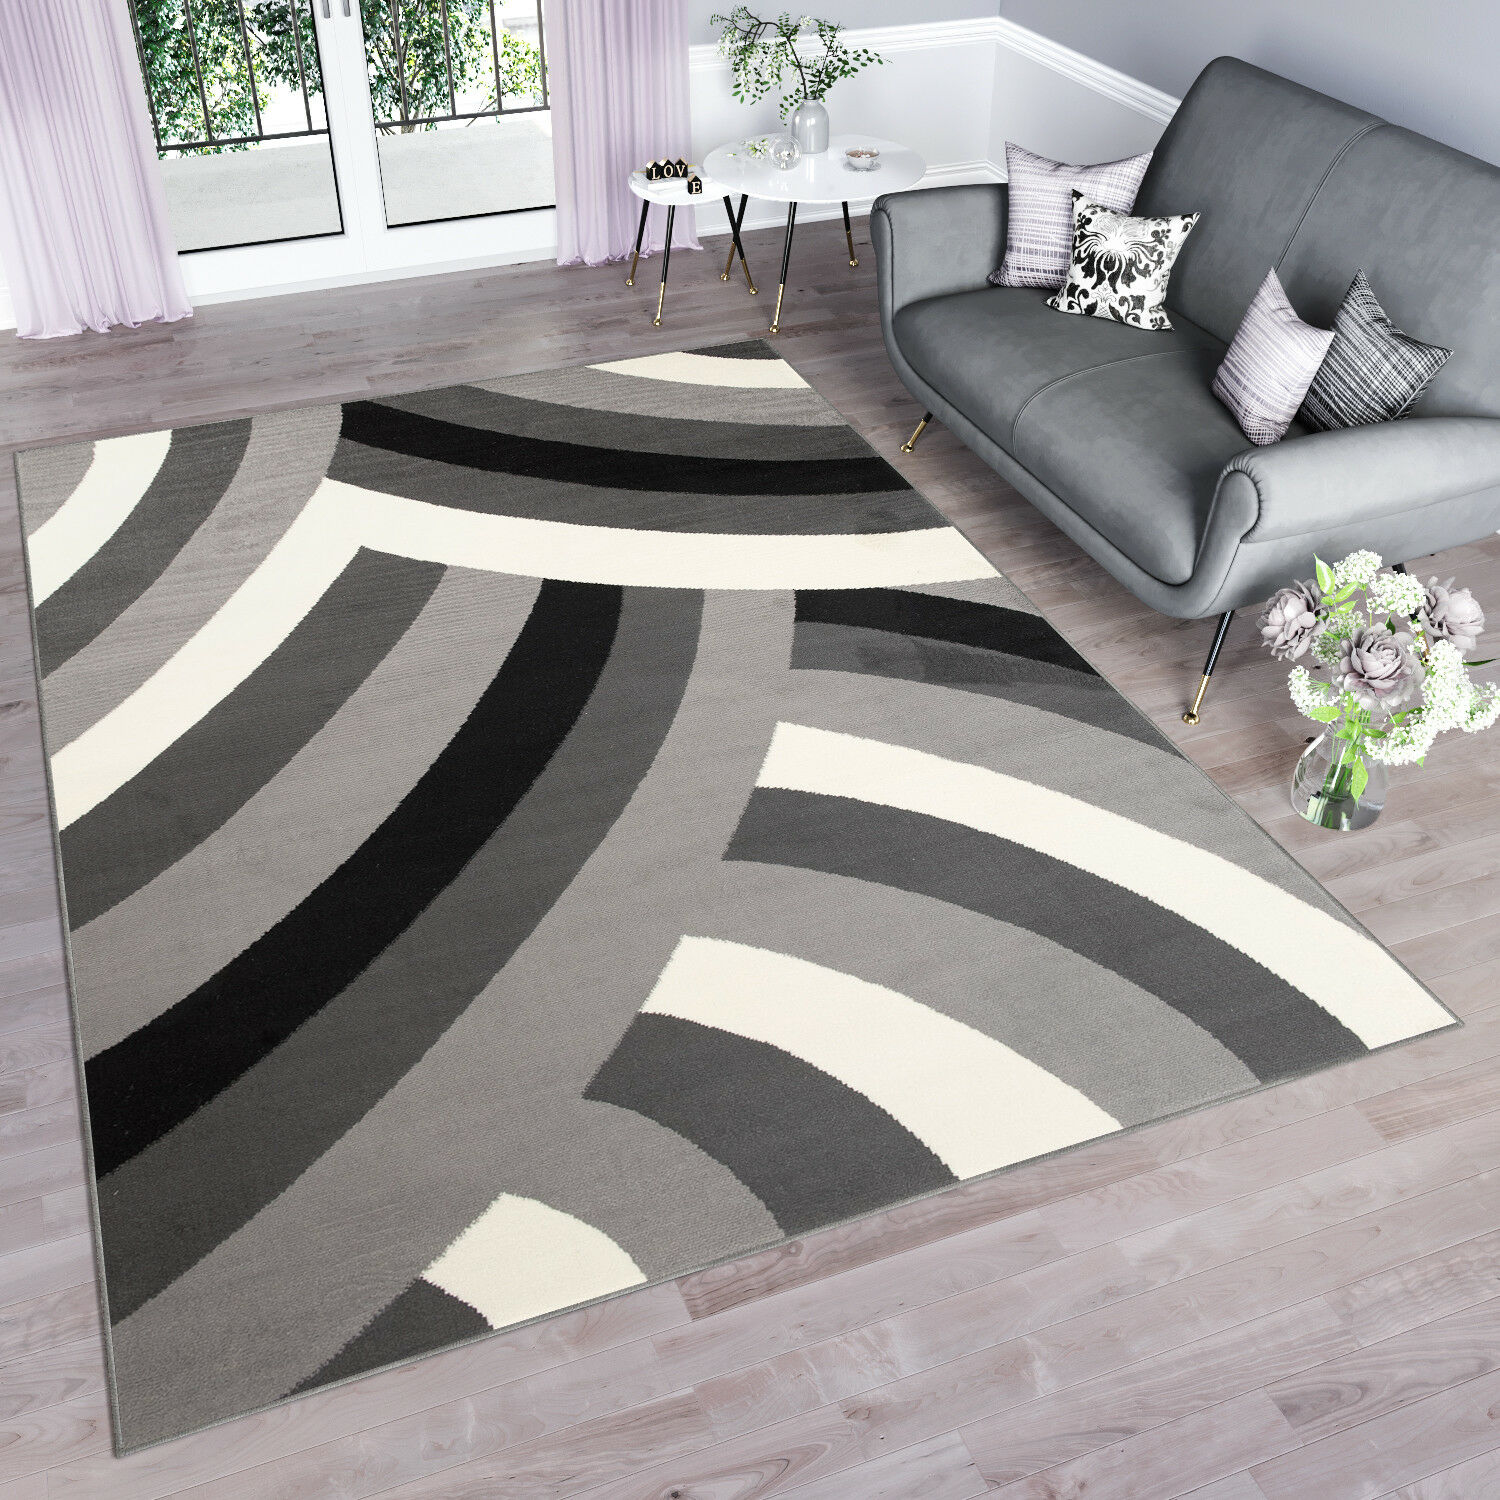 grau Modern Rug Interior Design for Bedroom Living Room Room Room Abstract Wave Pattern adbc91